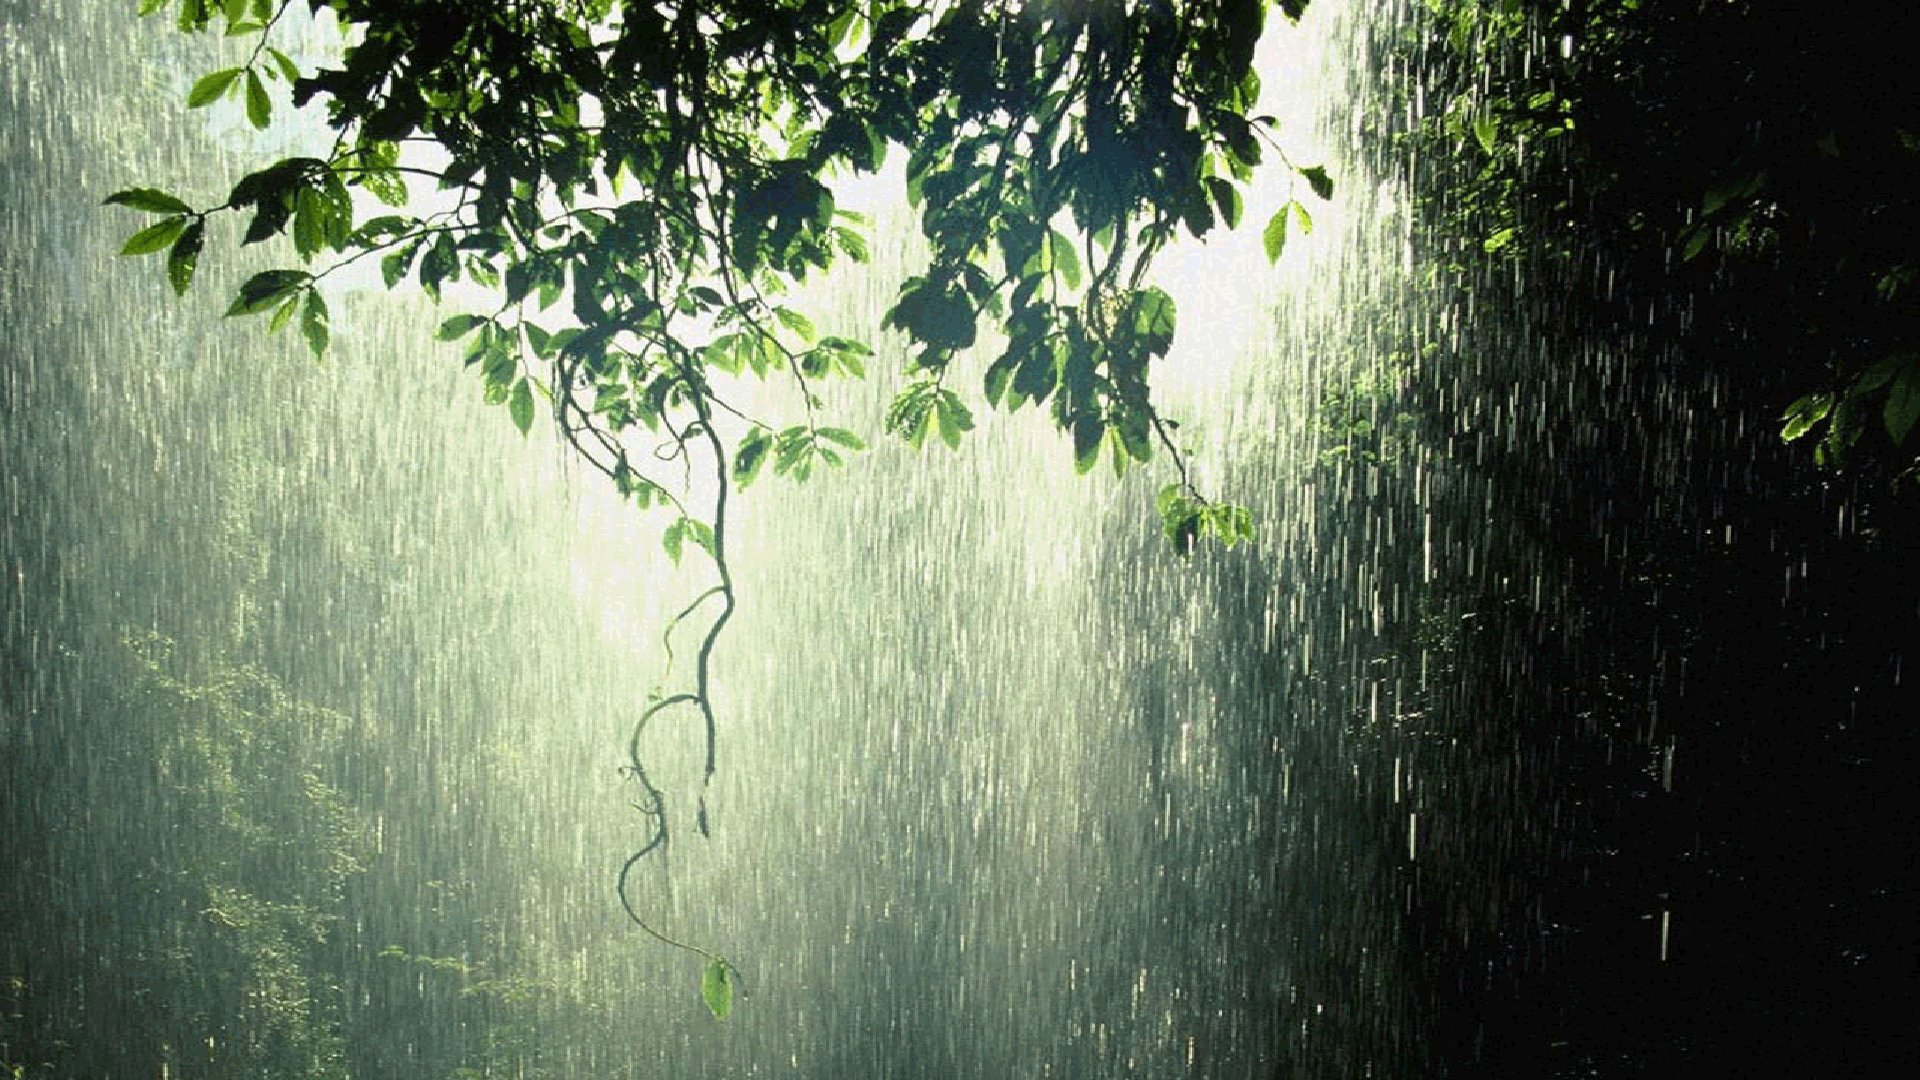 raining in forest HD Wallpaper Background Image 1920x1080 ID 1920x1080